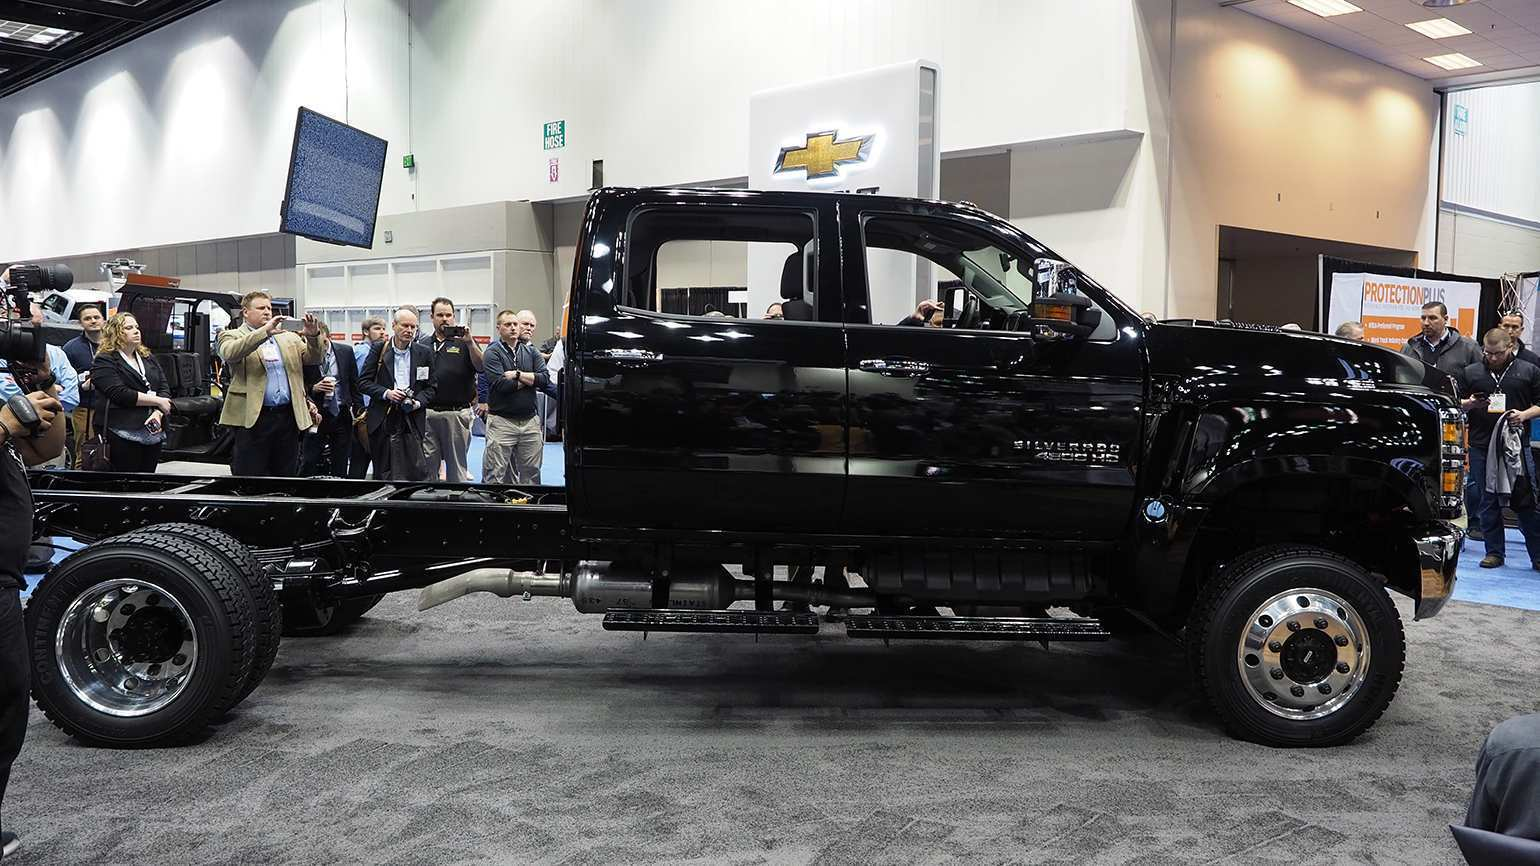 22 Concept of 2019 Gmc Hd 4500 Price with 2019 Gmc Hd 4500